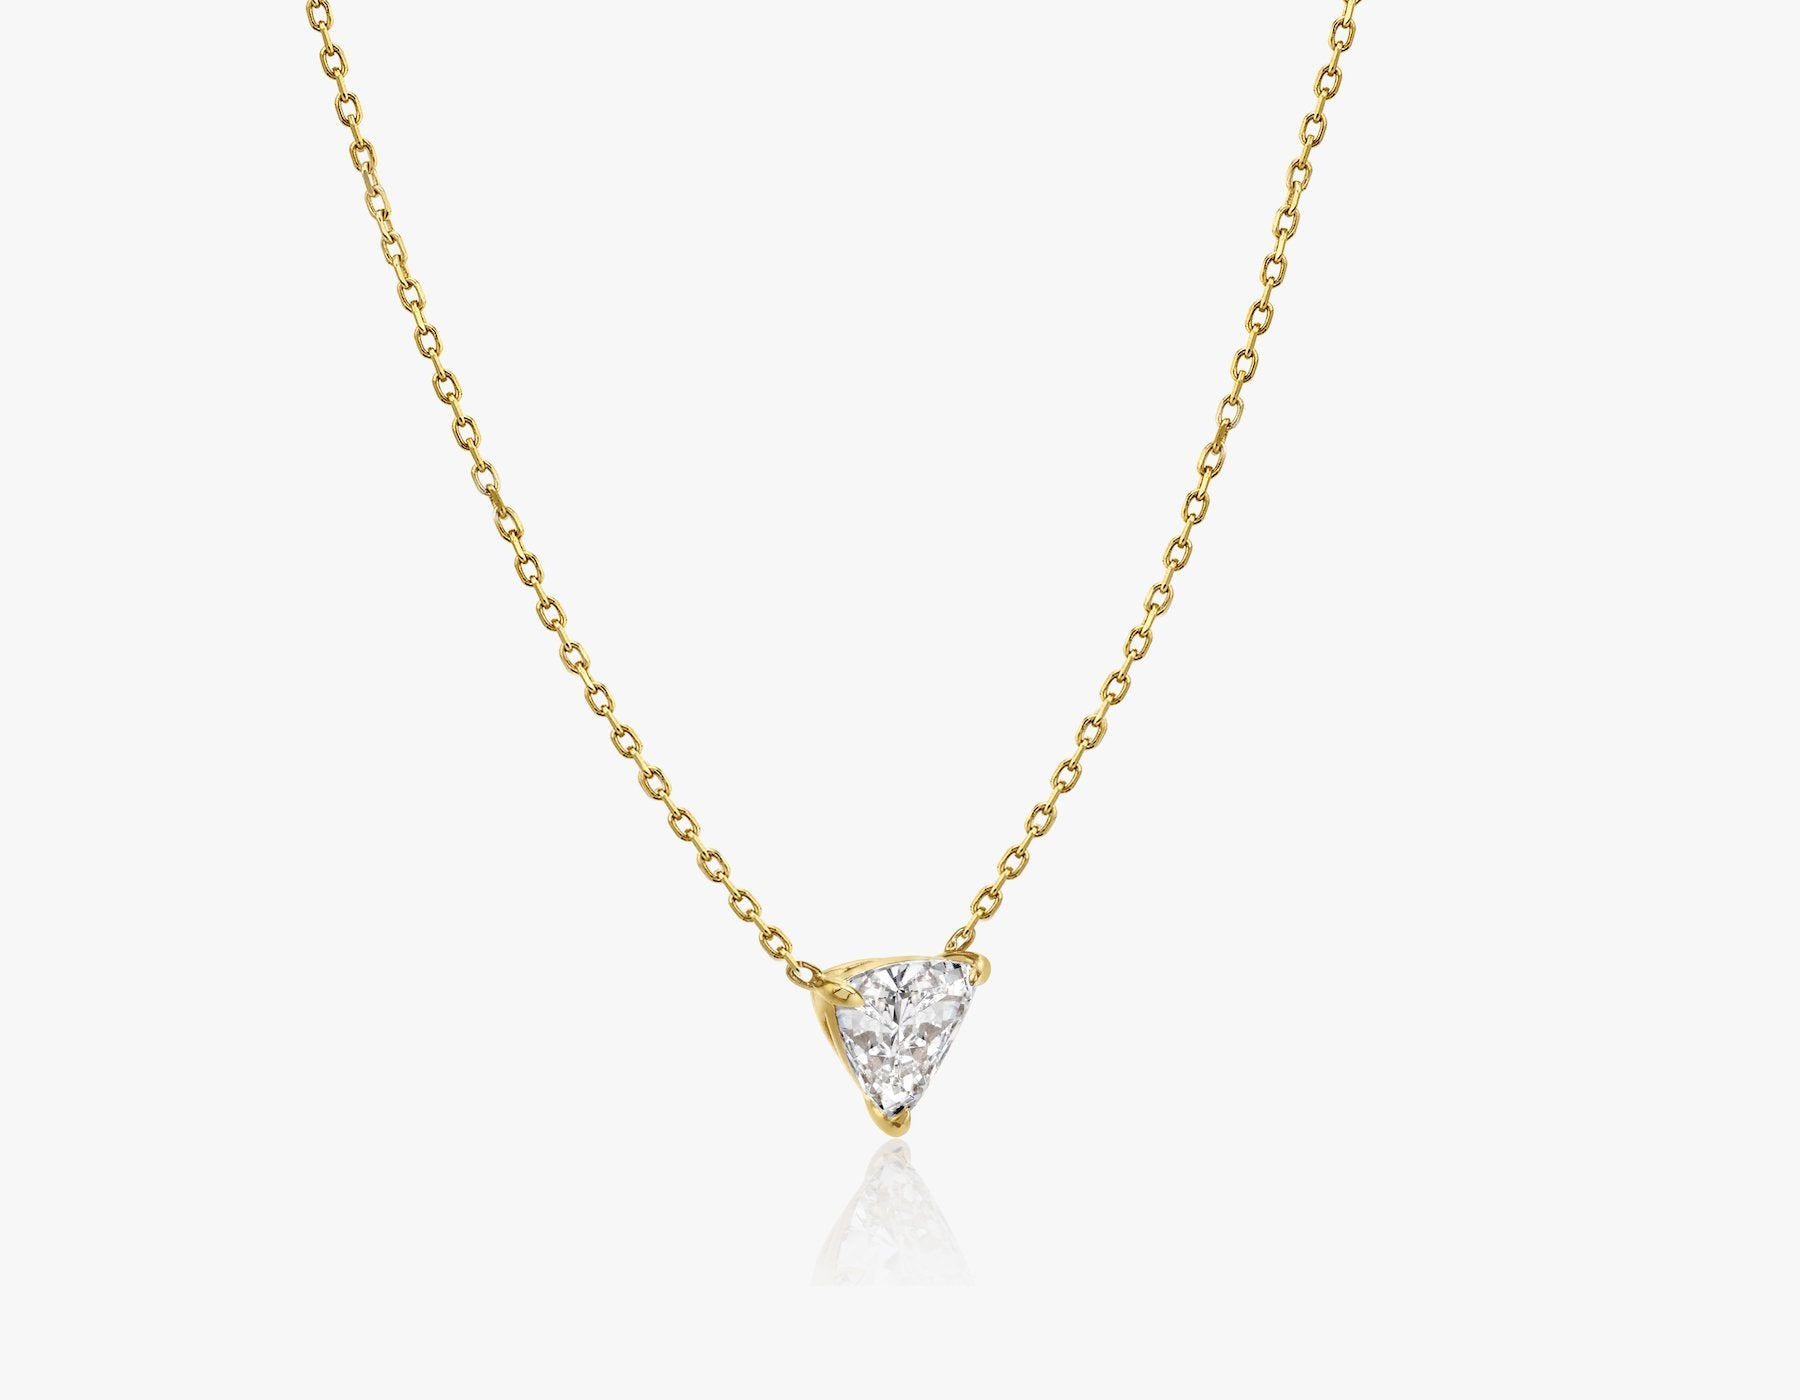 Vrai 14k solid gold Solitaire Trillion Diamond Necklace sustainably created triangle diamond prong set on simple chain side view, 14K Yellow Gold